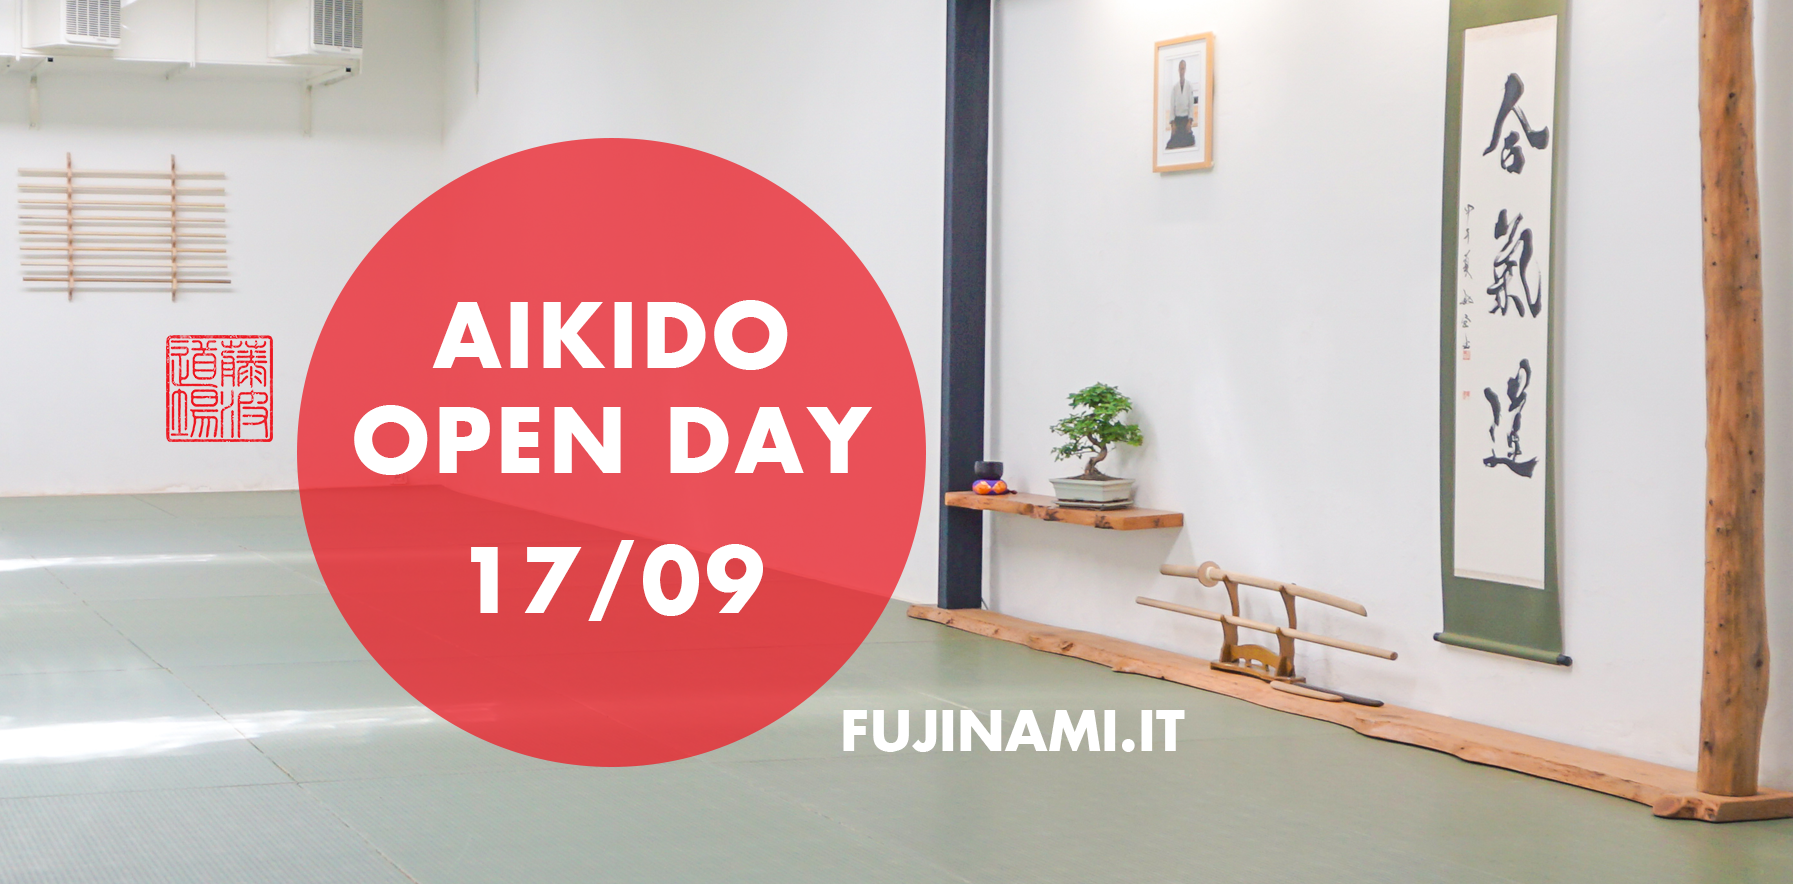 aikido-bologna-open-day